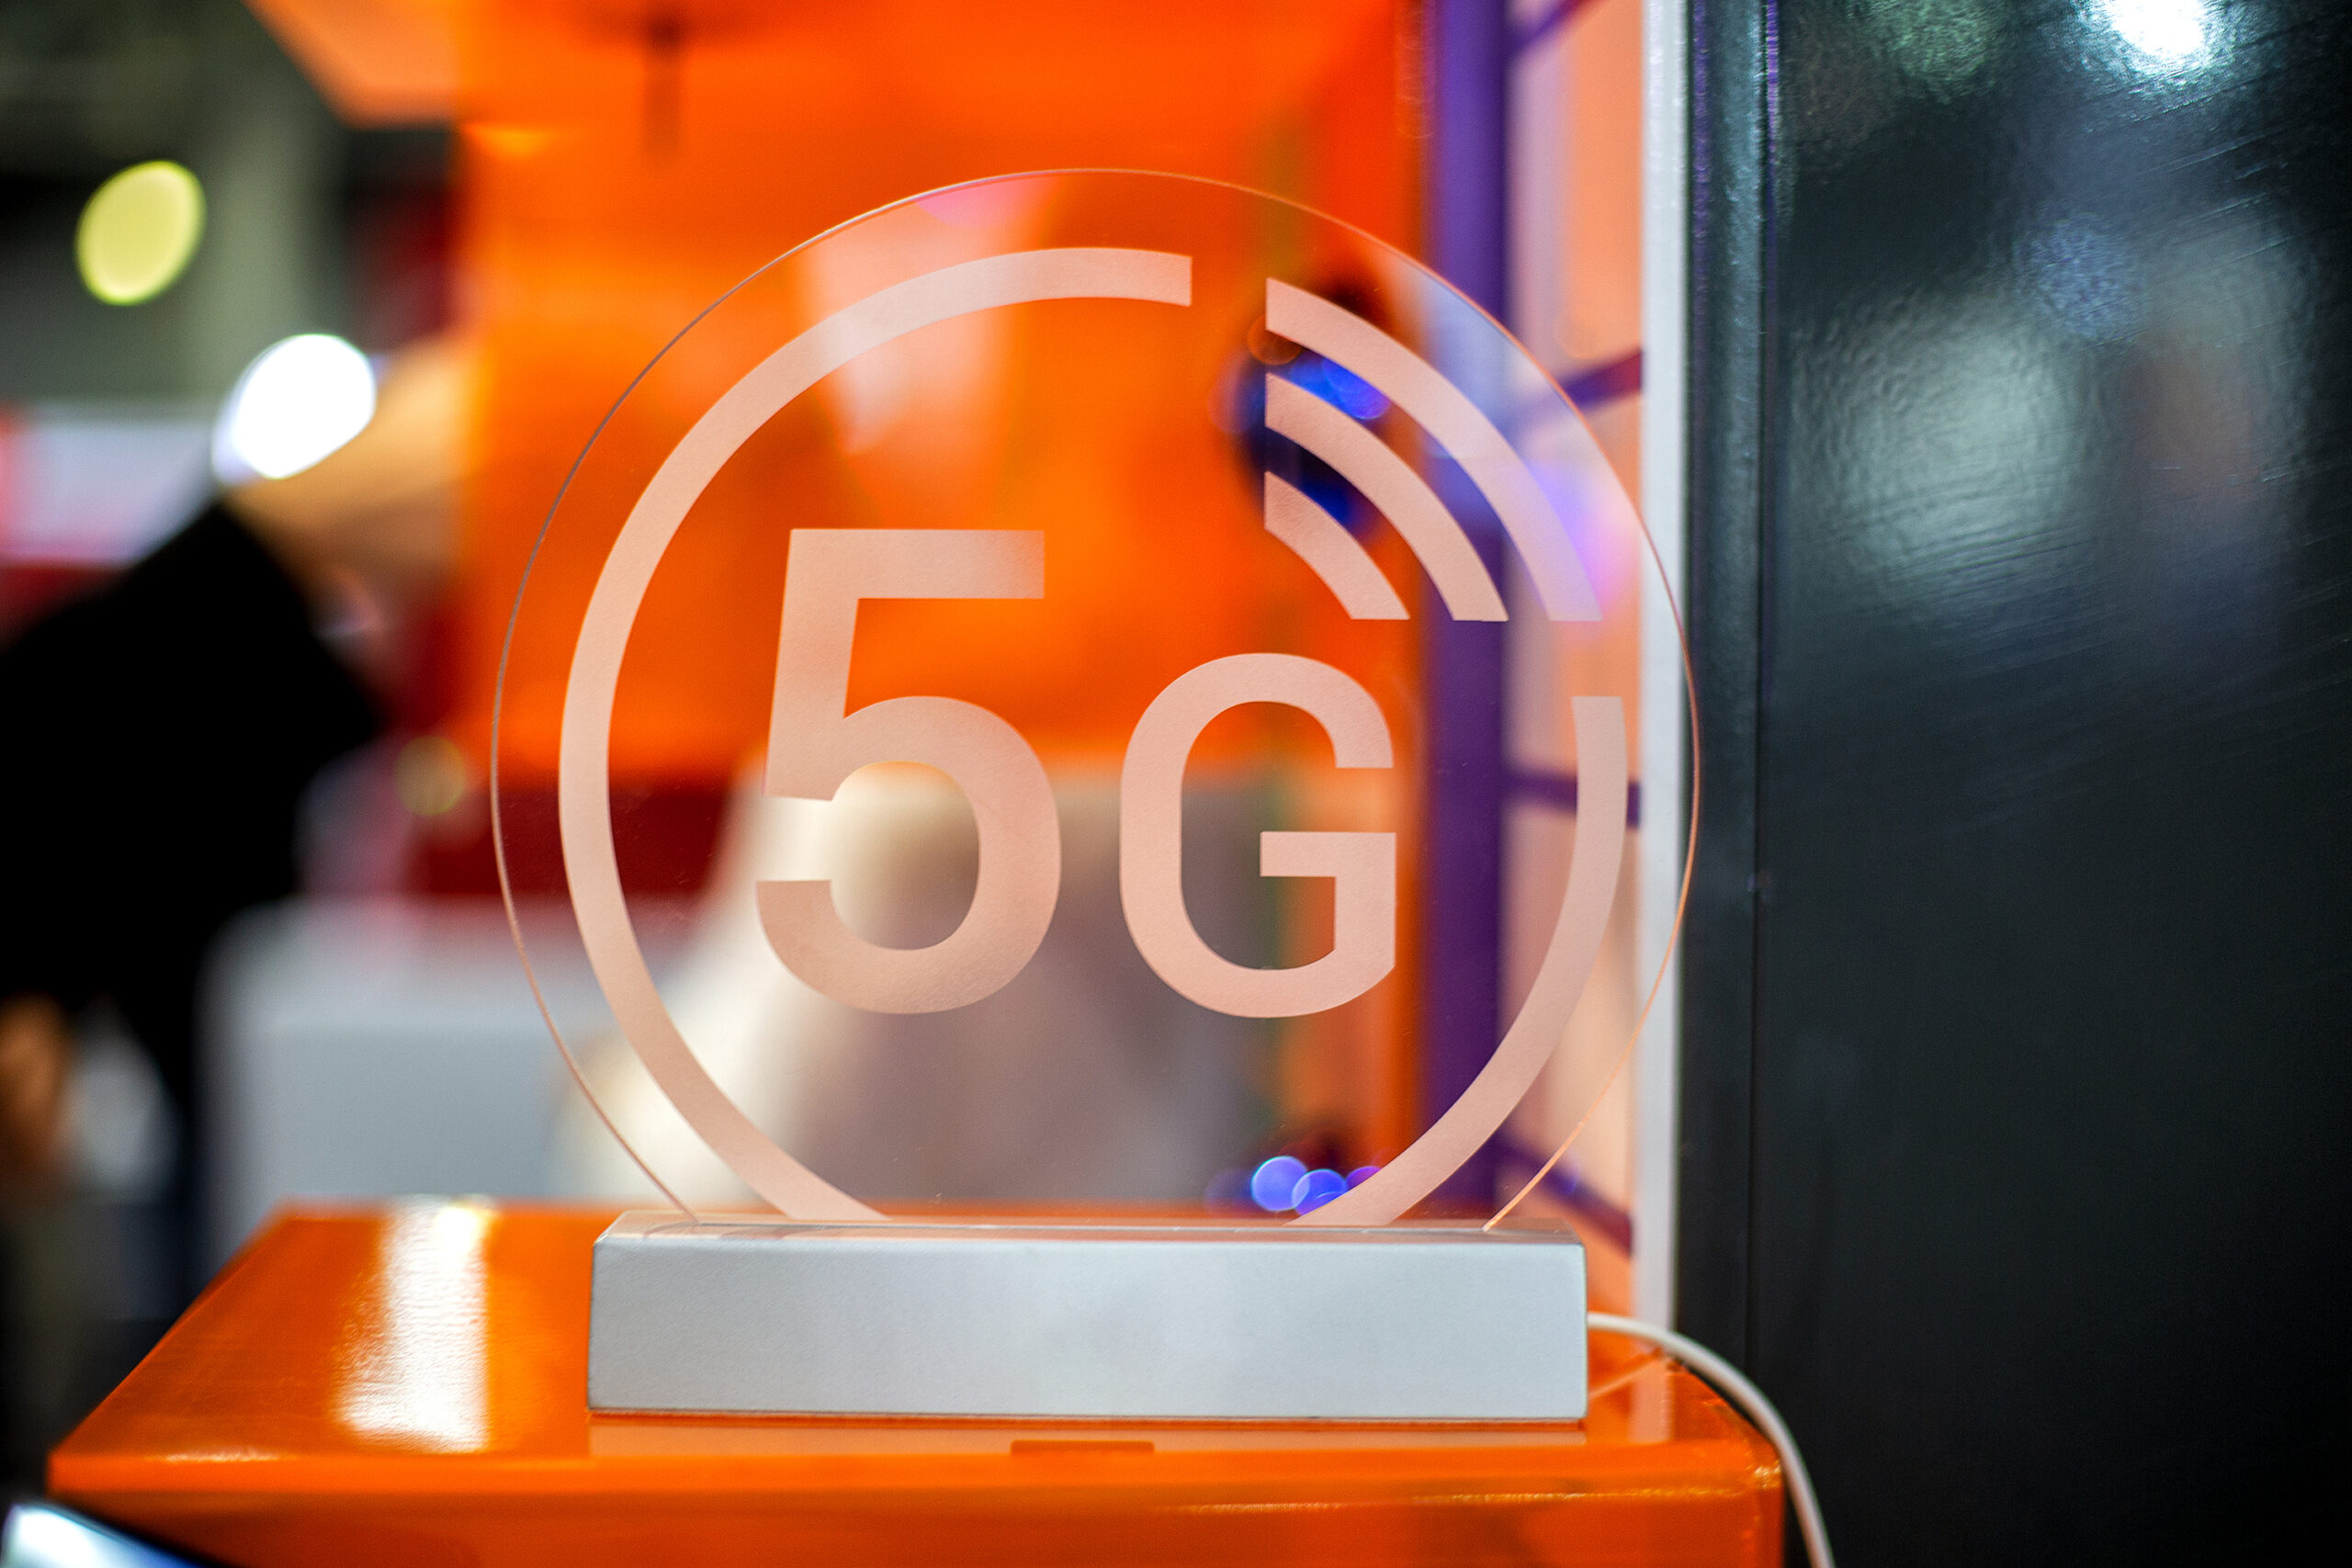 Orange France to launch 5G in December 2020 after September spectrum auction